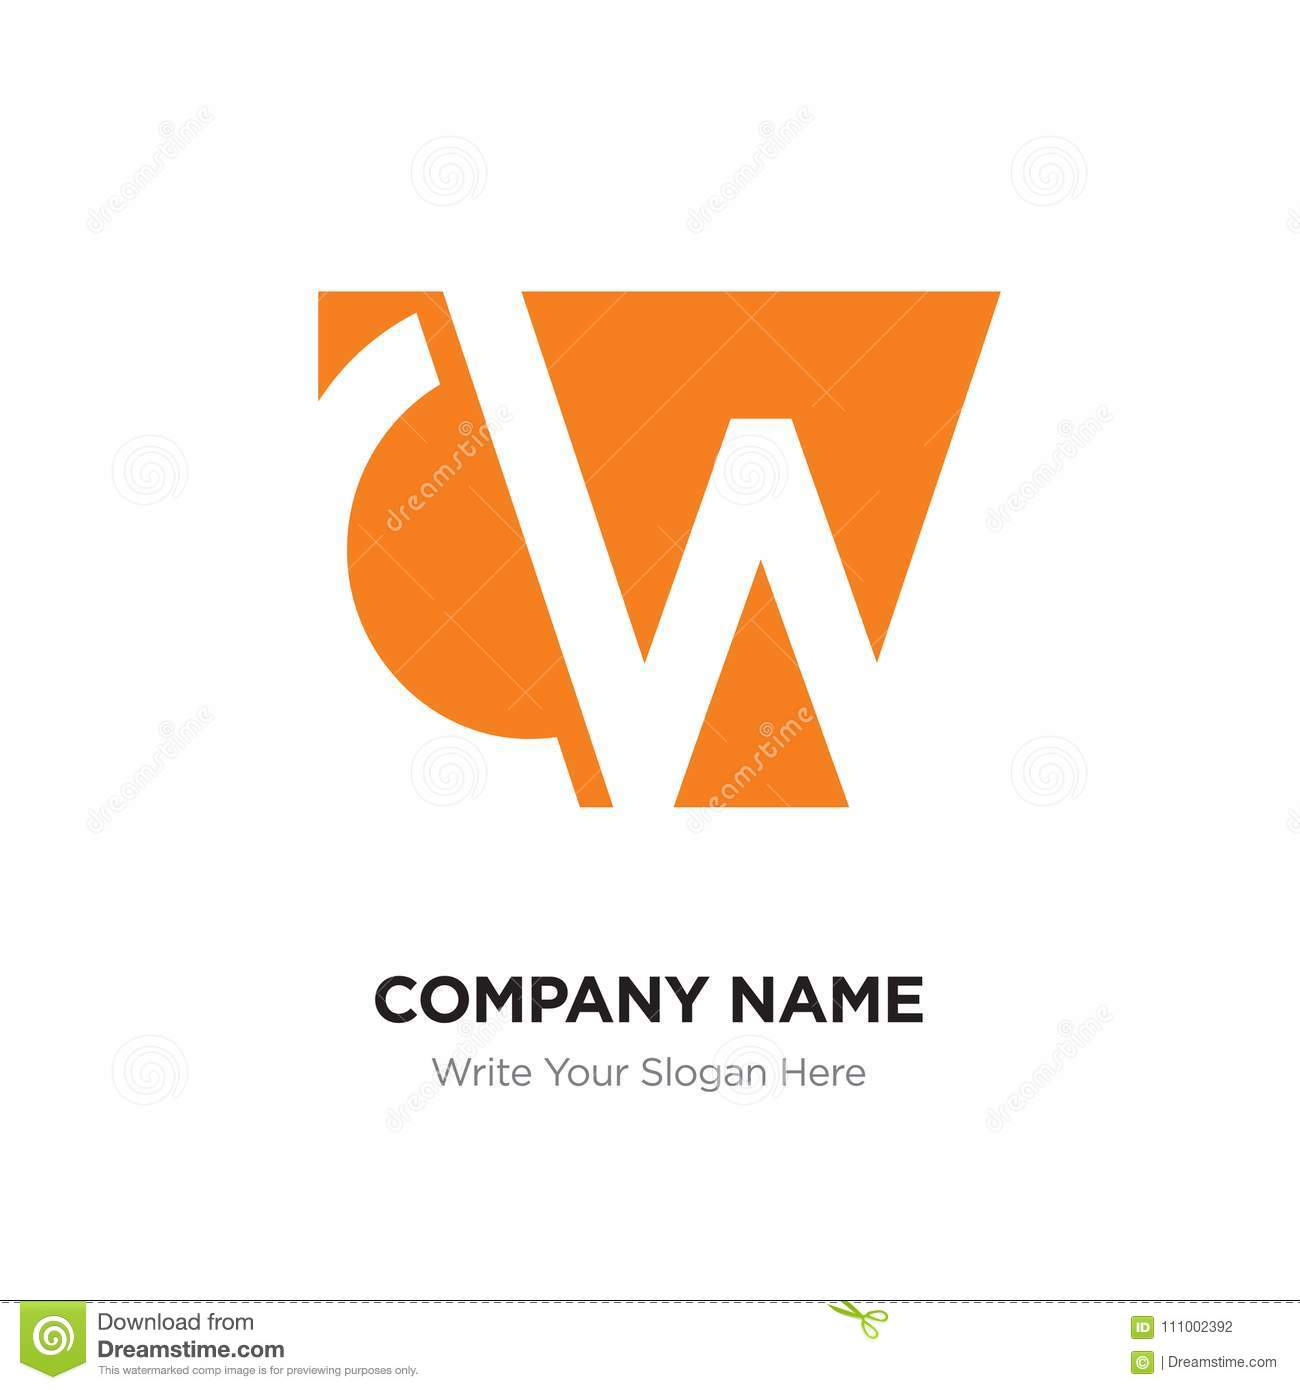 Connect Wc Abstract Letter Cw Wc Logo Design Template Orange Alphabet